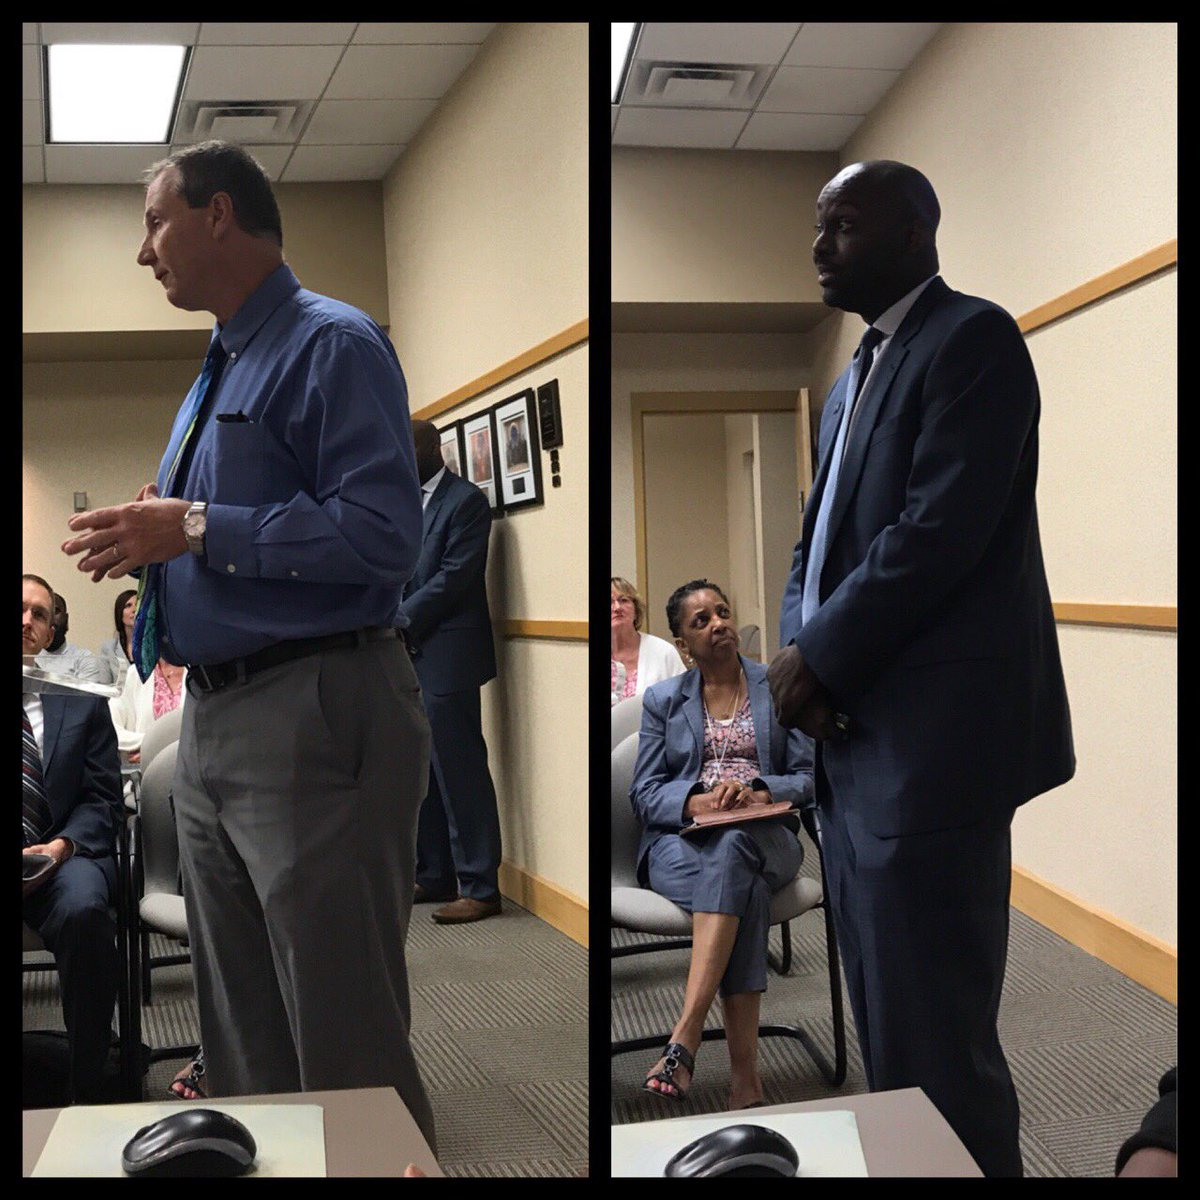 The passion lit up the room! The impact of @ympmentoring is priceless @CoachJimmyJ @roykdobbs Thanks for leading with PURPOSE!#lifechanging <br>http://pic.twitter.com/x8IO6GdVrd